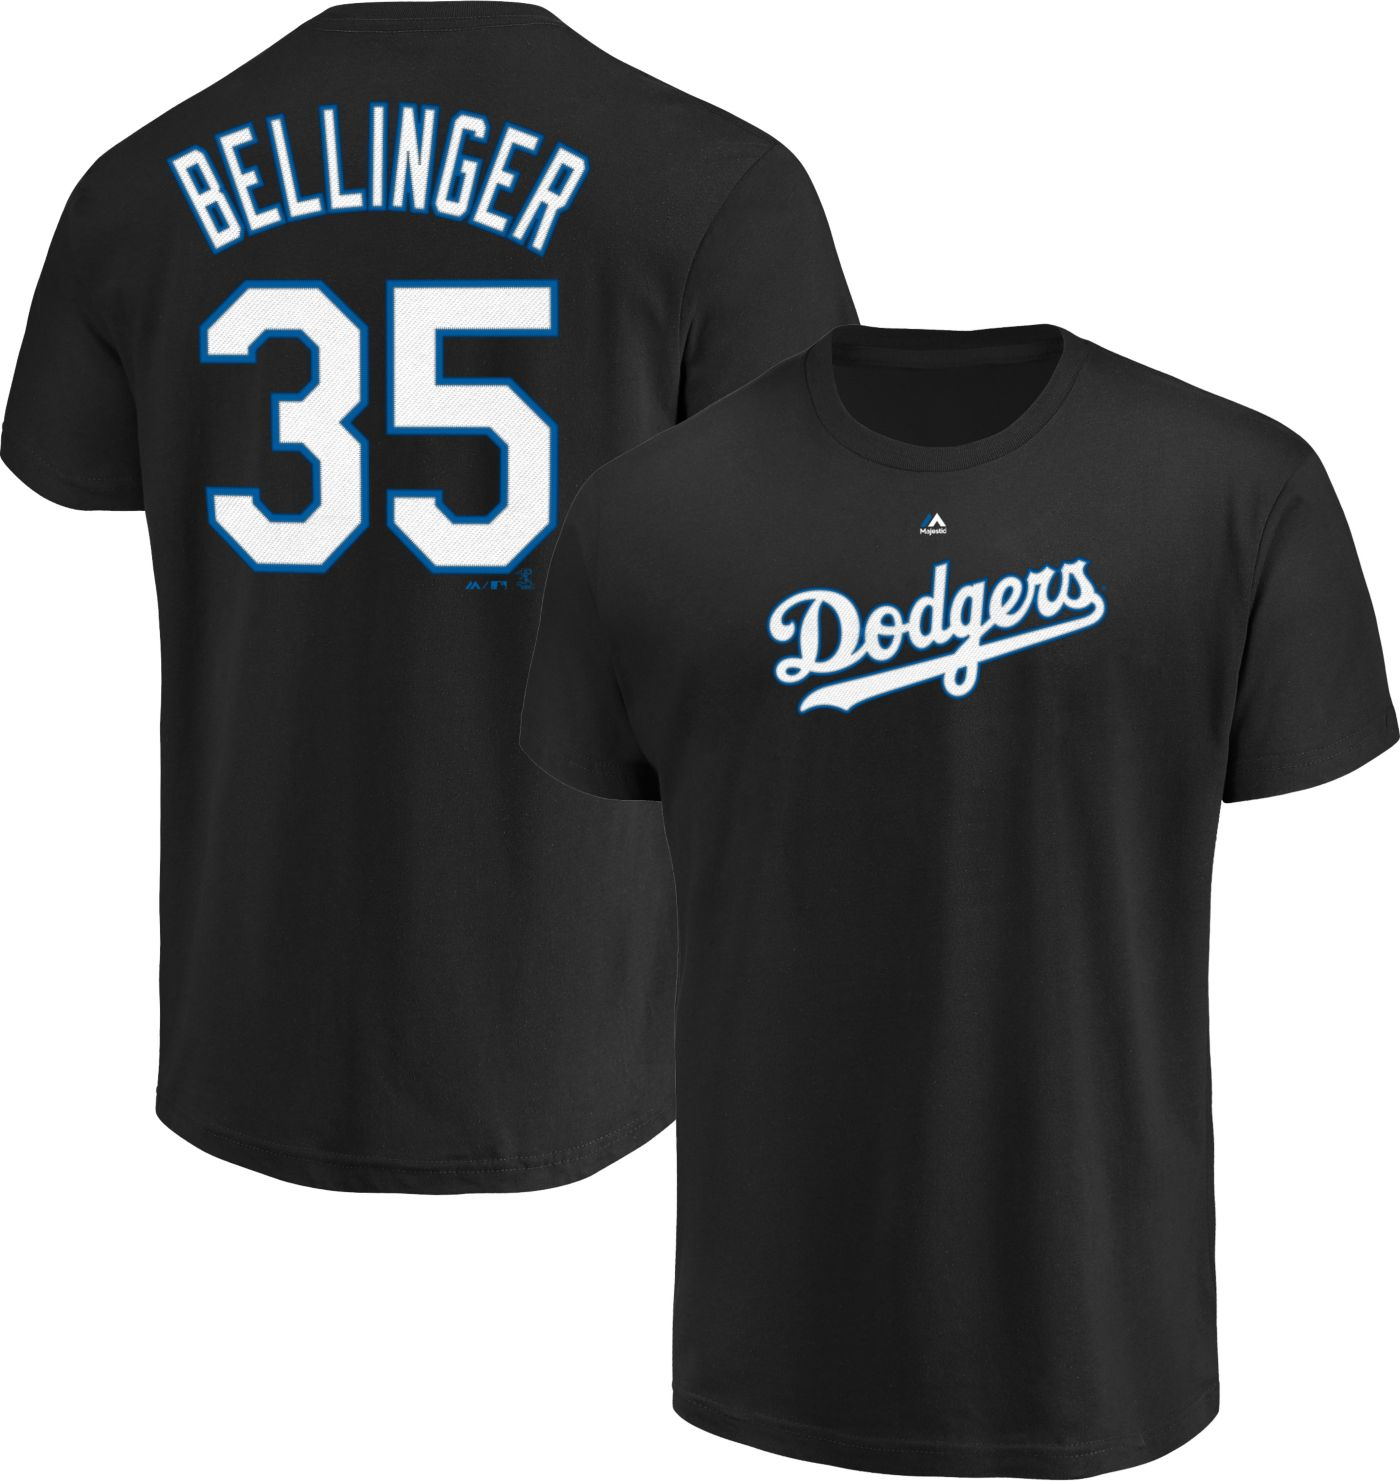 Majestic Youth Los Angeles Dodgers Cody Bellinger #35 Black T-Shirt